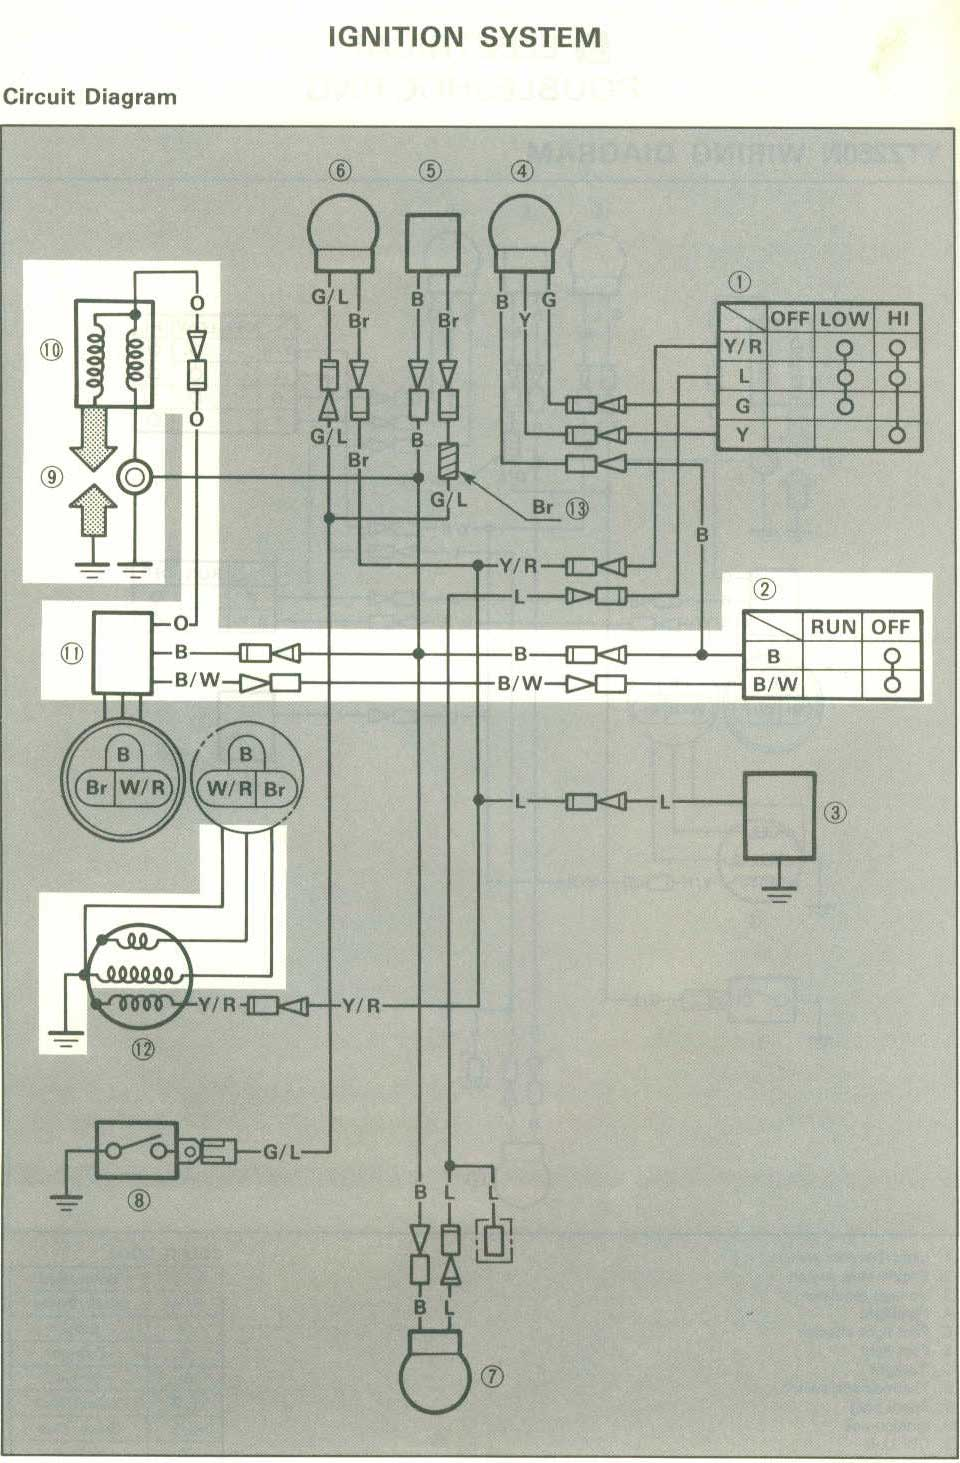 hight resolution of 3 wheeler world tech help yamaha wiring diagrams rh 3wheelerworld com yamaha 90 outboard wiring diagram